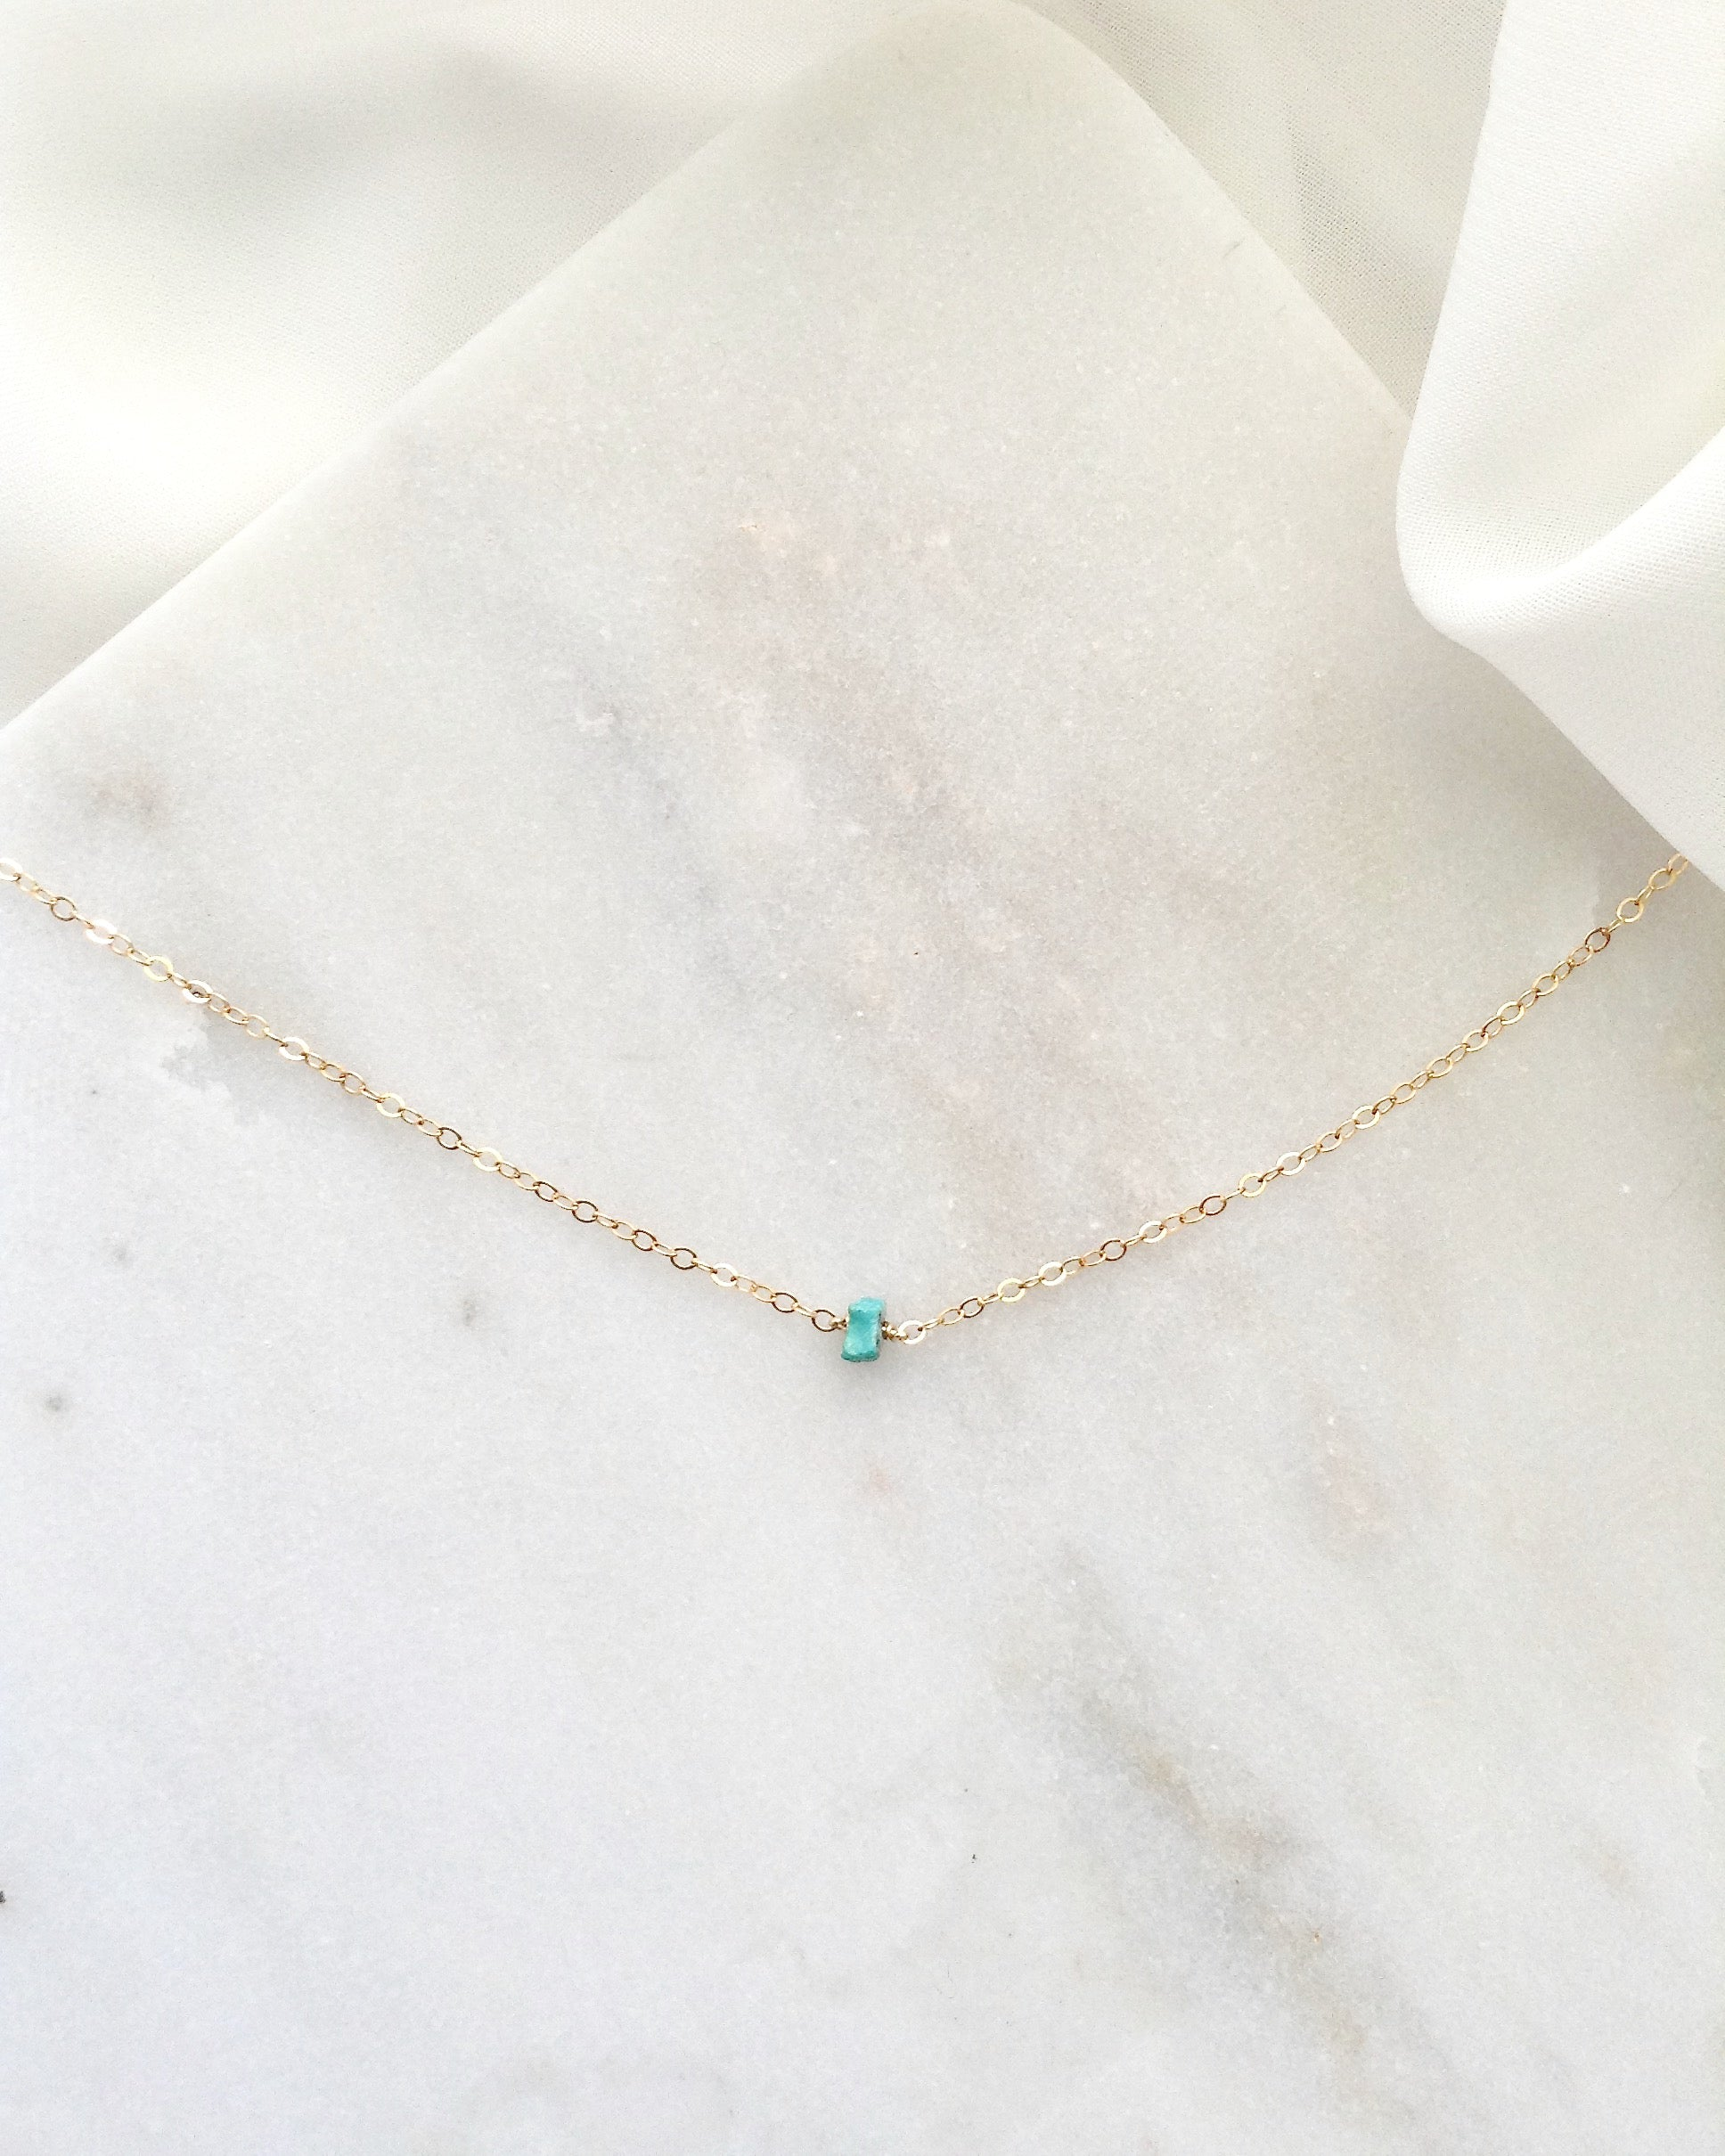 Simple Turquoise Choker Necklace | Dainty Chain Choker in Gold Filled or Sterling Silver | IB Jewelry